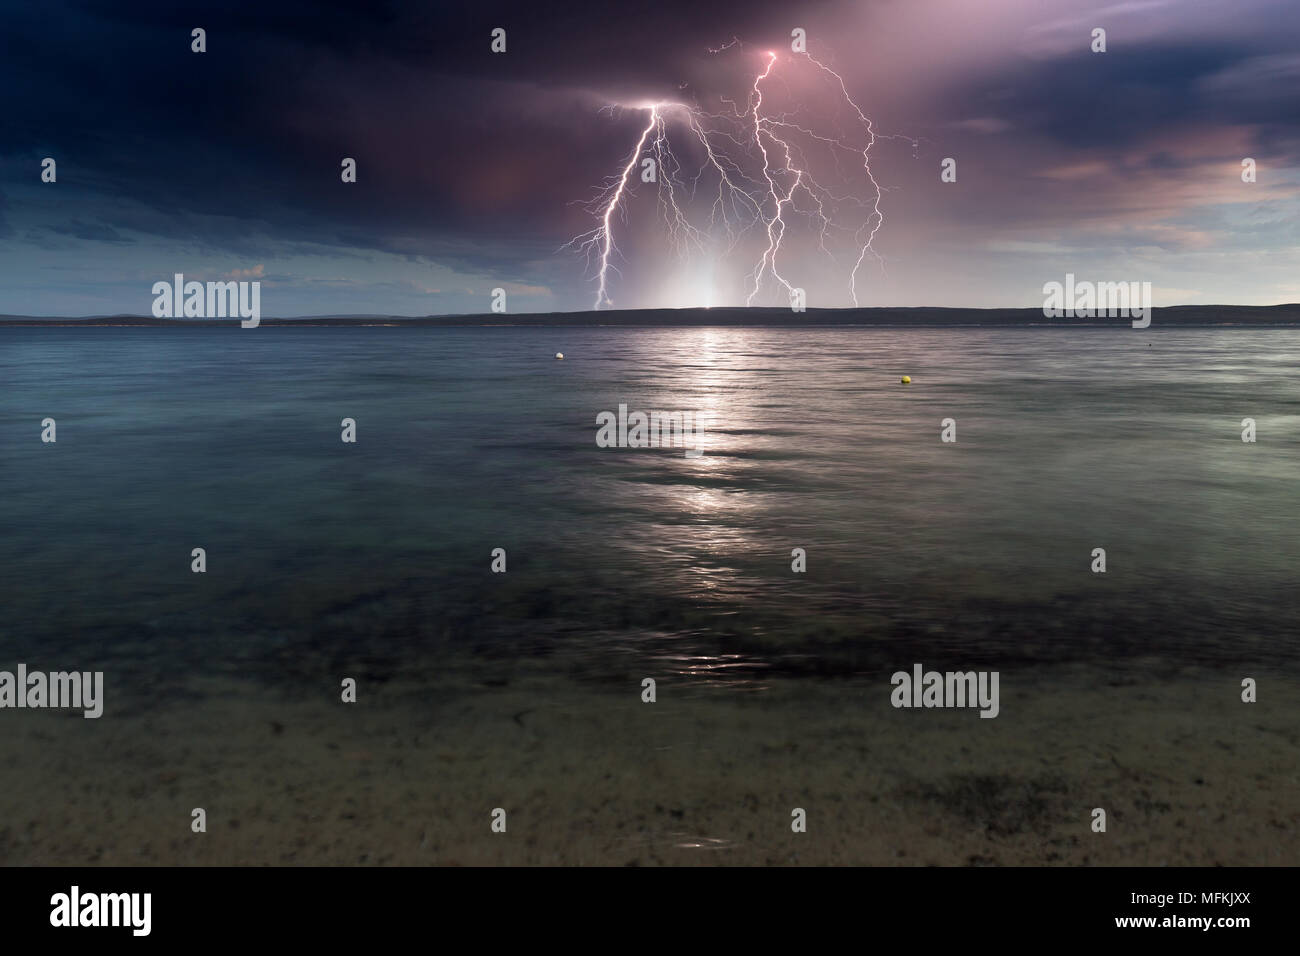 Spectacular lightning bolts over a calm ocean bay on an ominous, dark, contrasting stormy day. - Stock Image